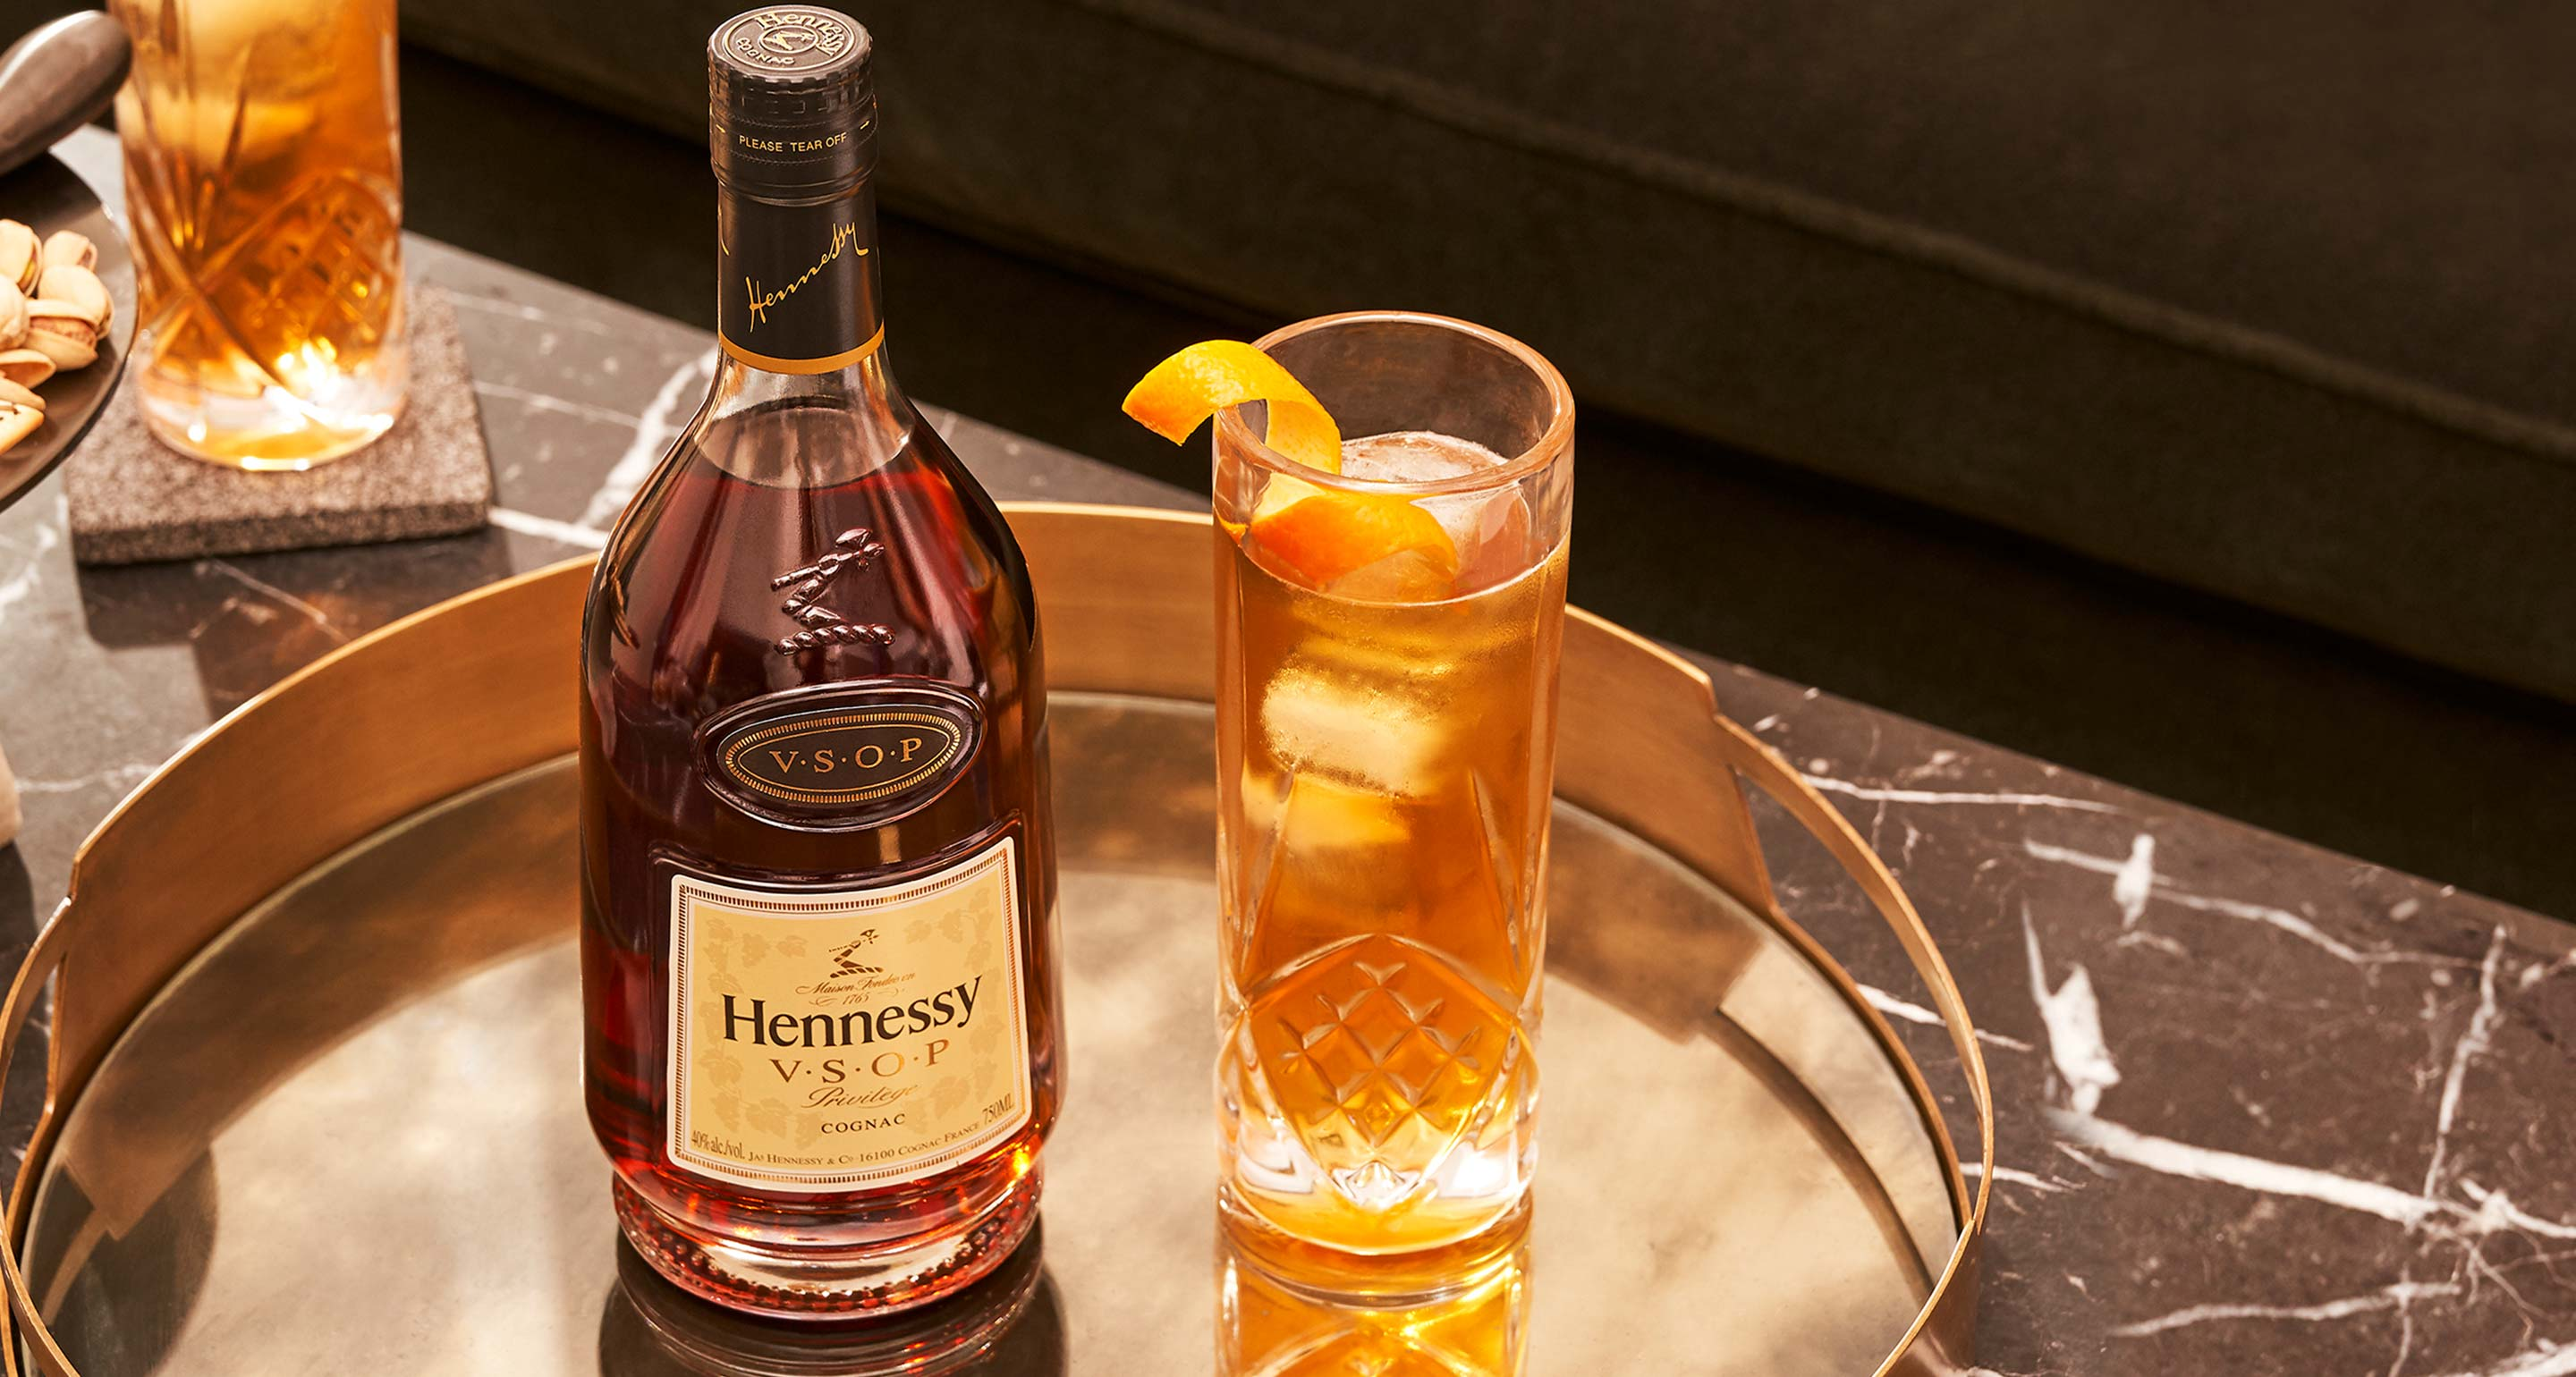 NBA cocktail, the Hennessy Sonic, featuring Hennessy cognac